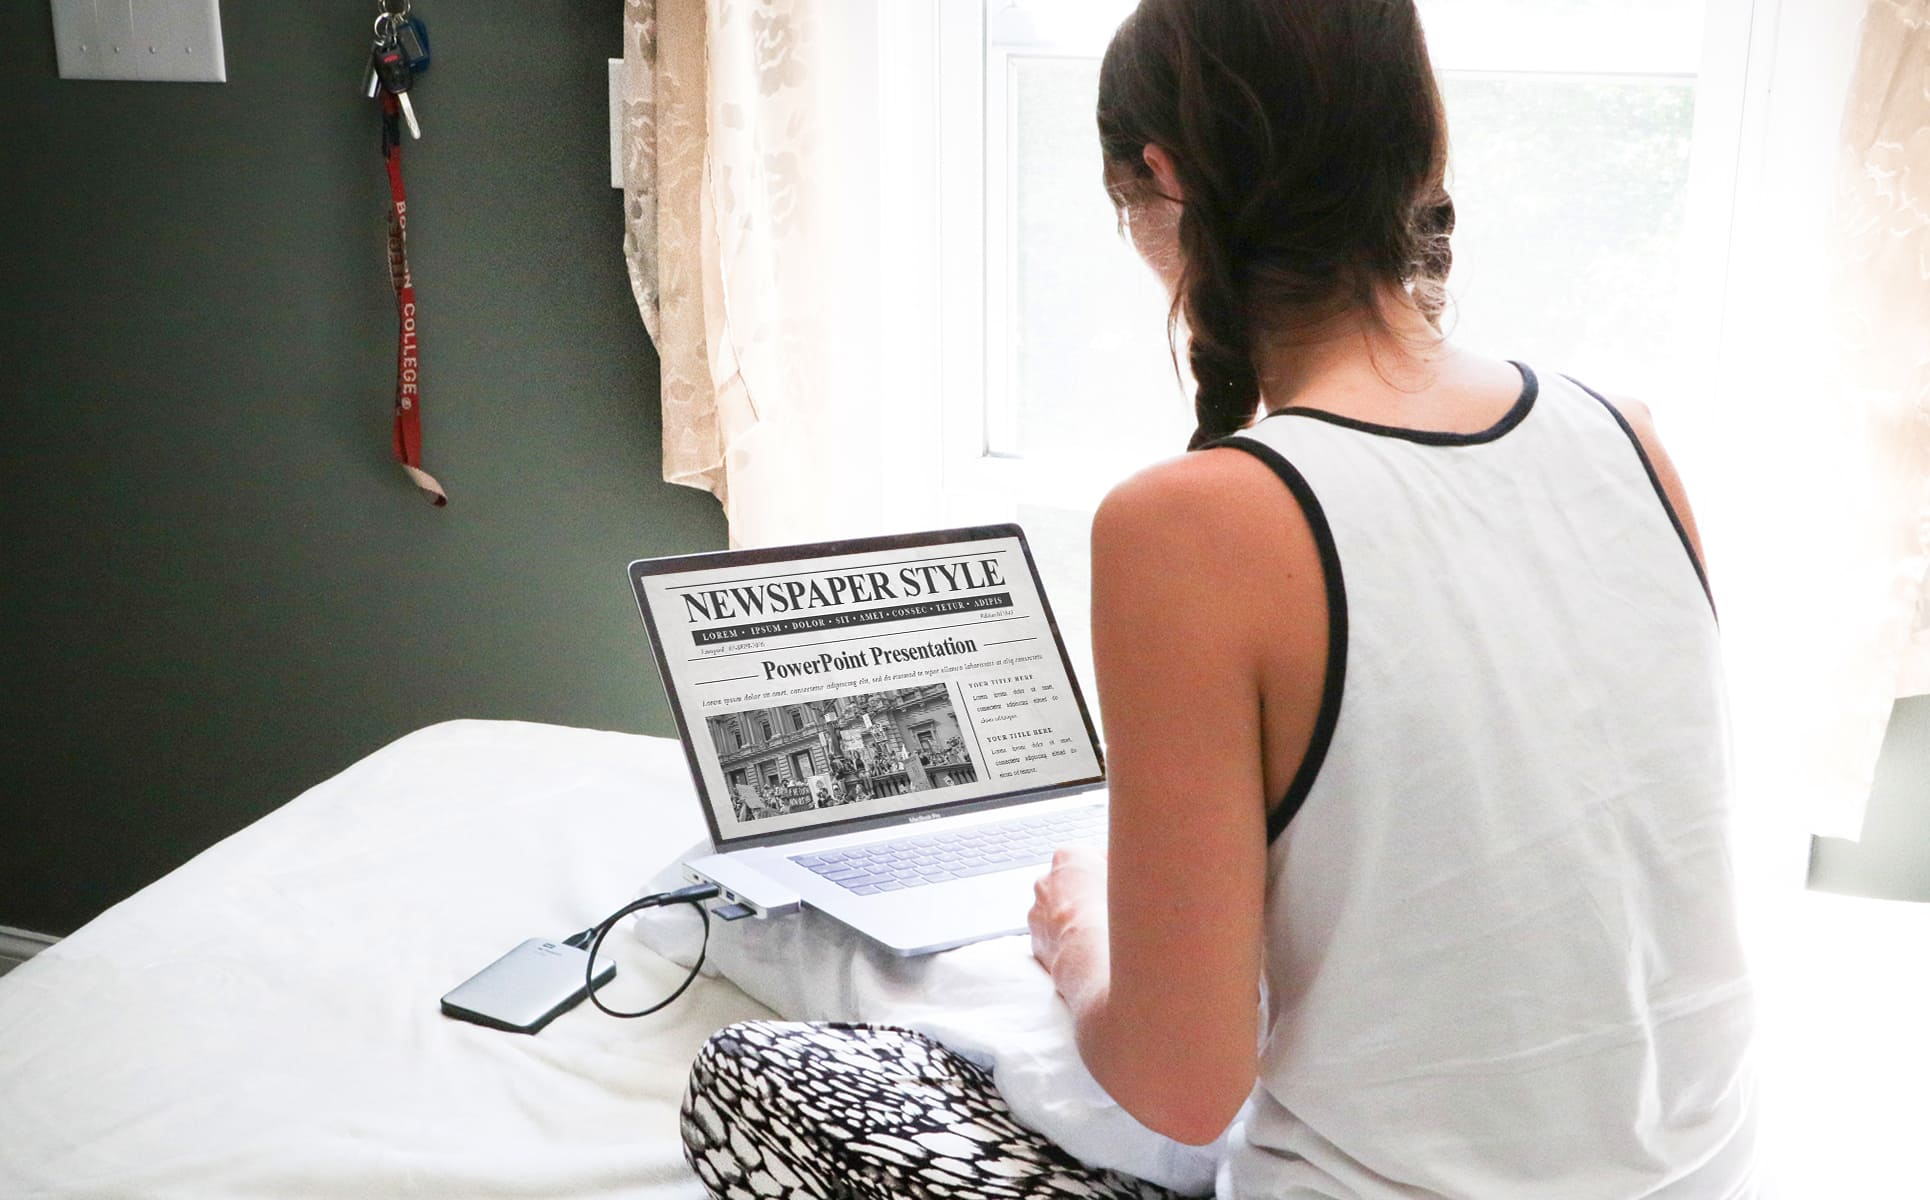 The girl sits at the computer and works on the presentation with the newspaper PowerPoint template.